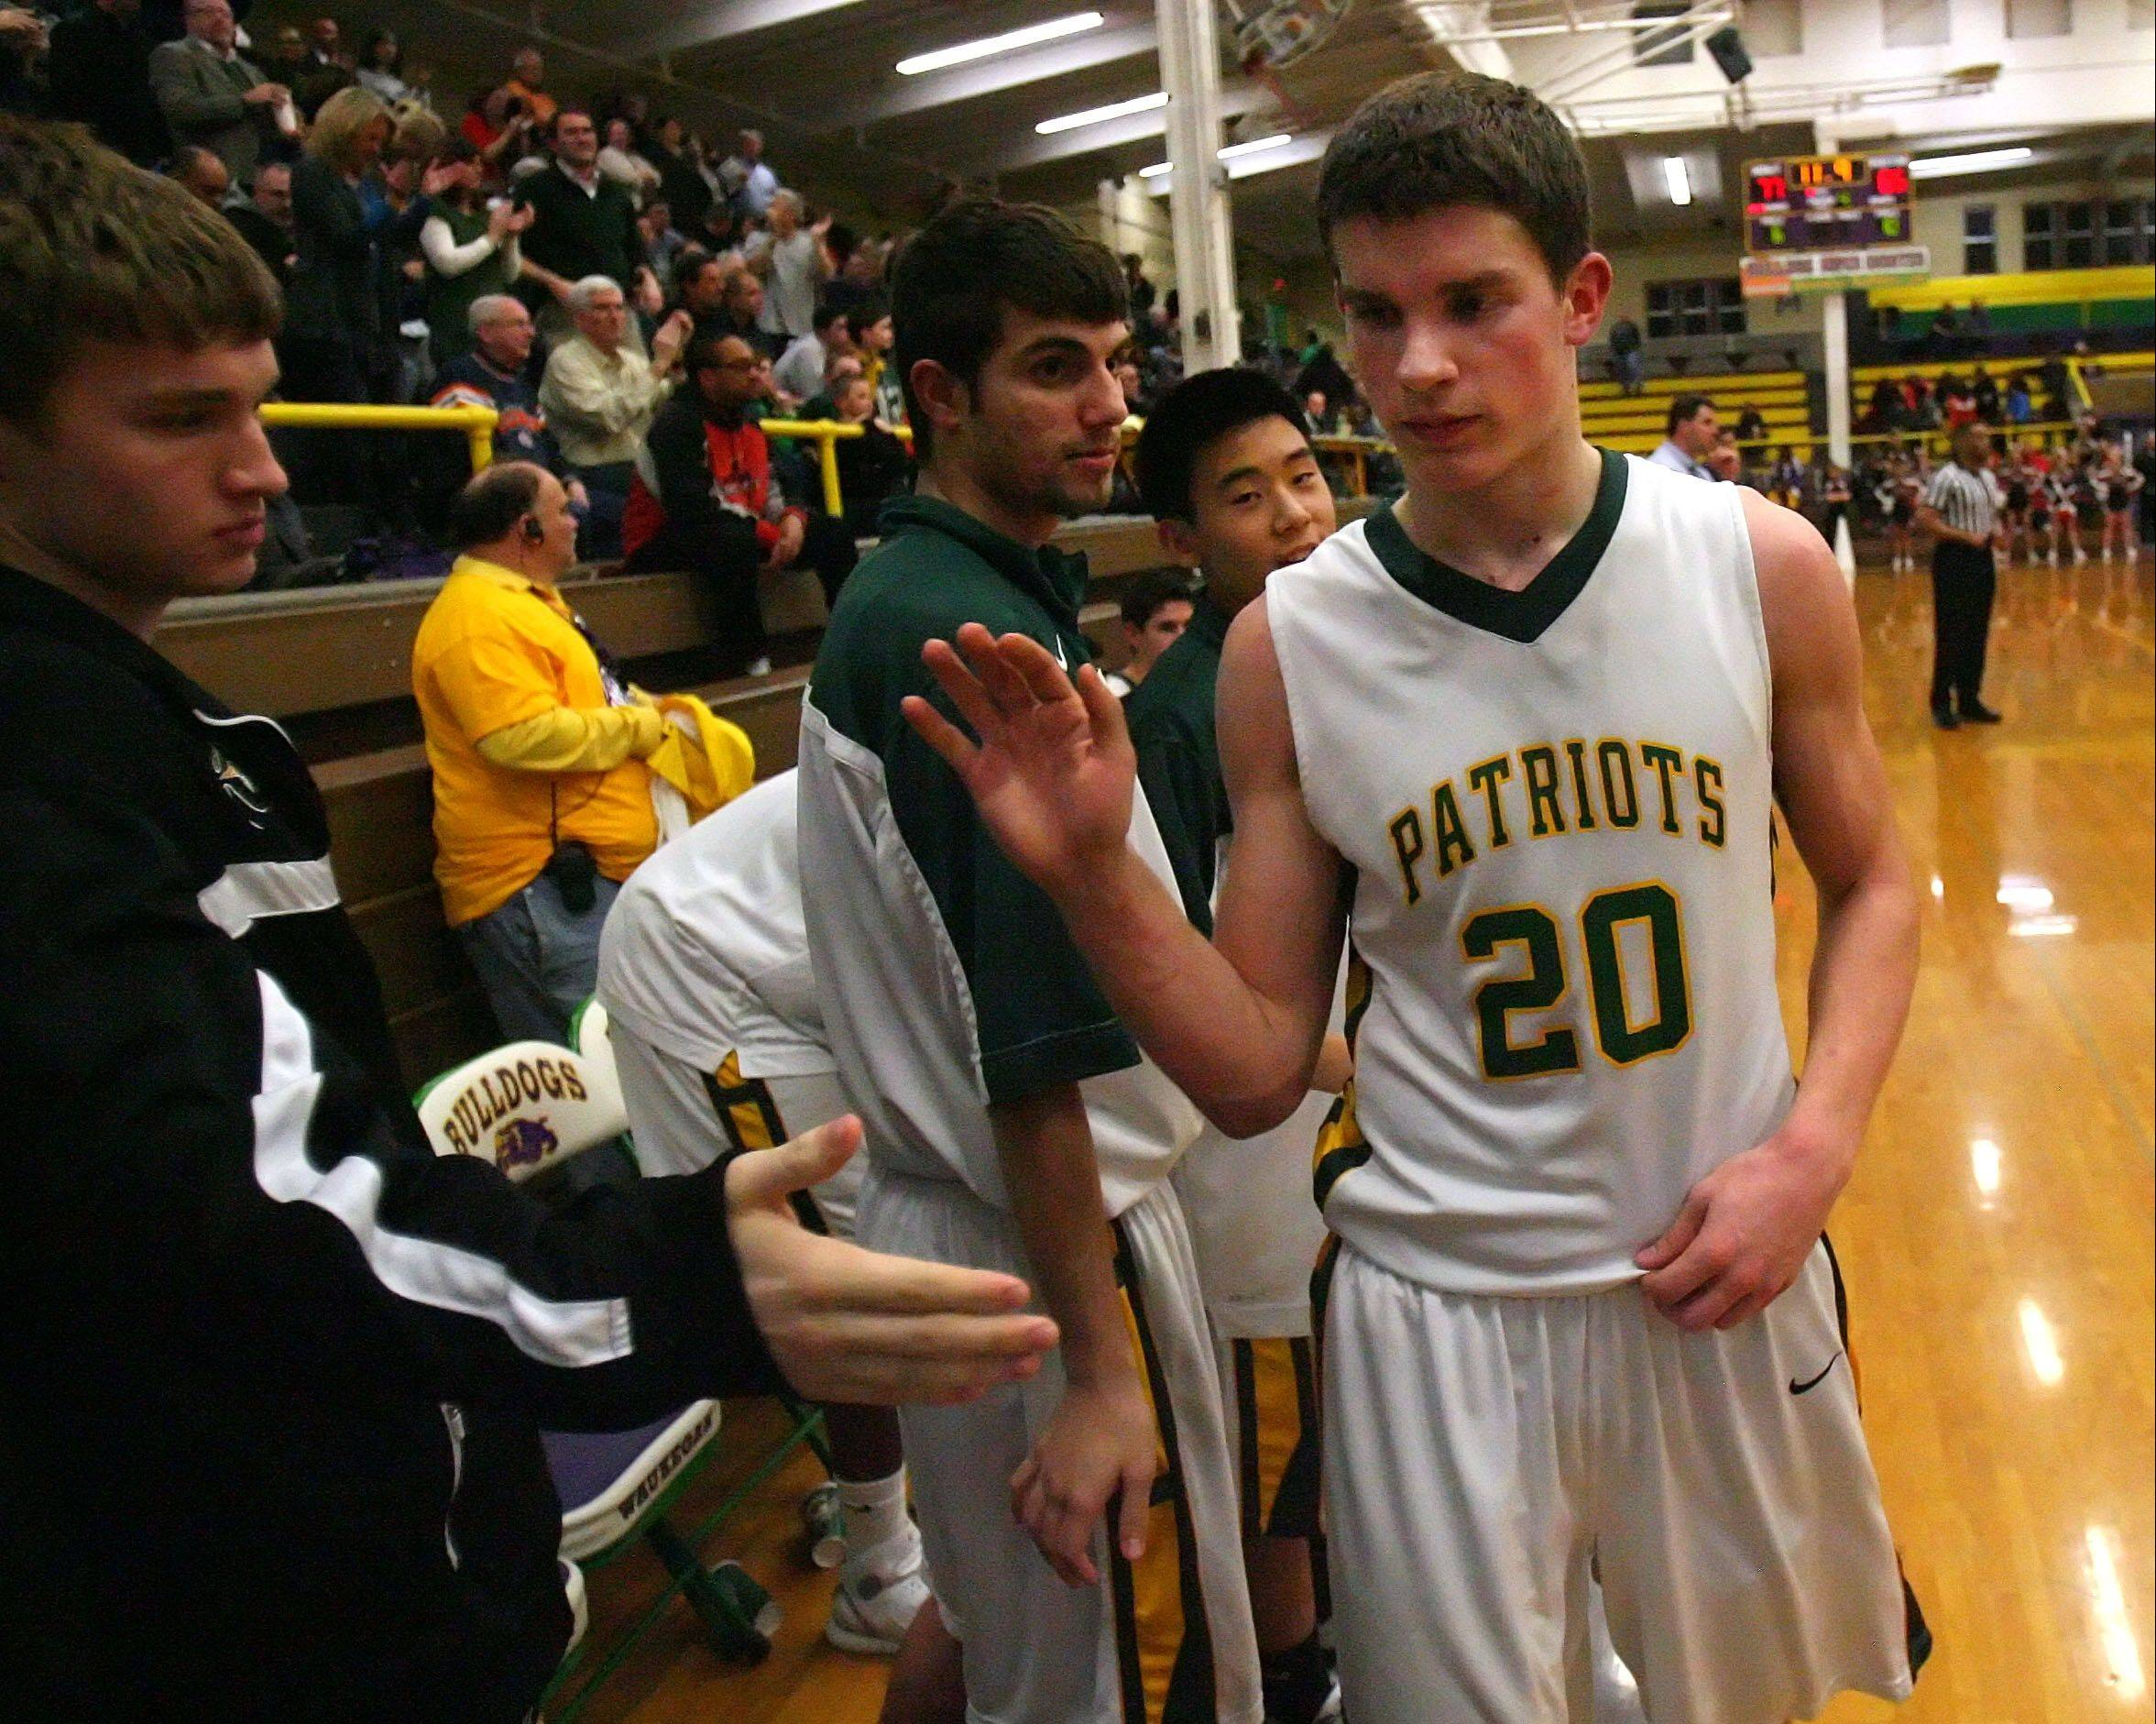 Stevenson's Matt Morrissey gets high-fives from the bench during the Patriots' win over Mundelein in the Class 4A Waukegan sectional semifinals Wednesday night.